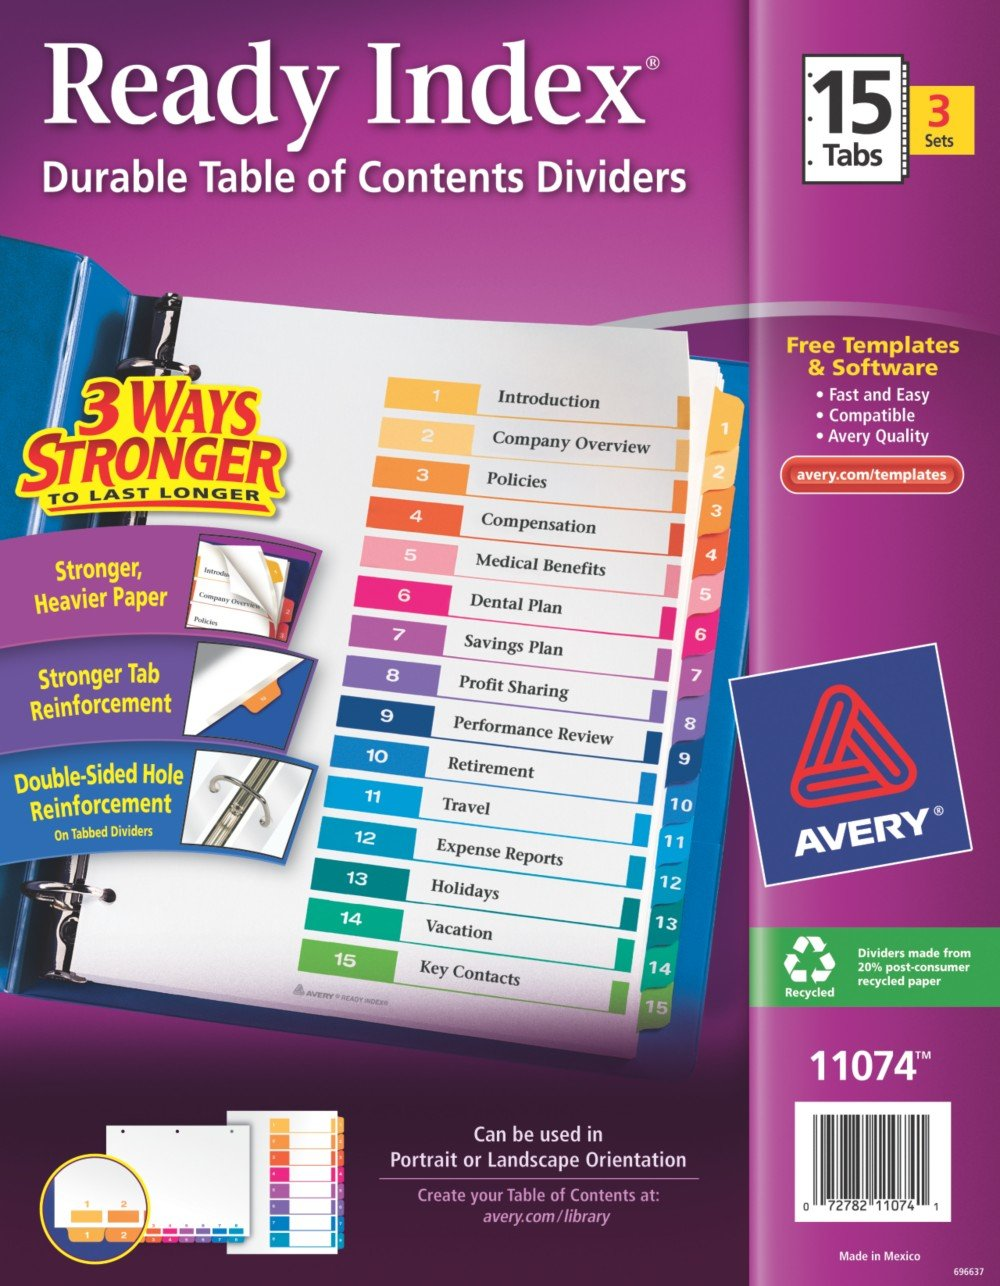 avery table of contents template 15 tab - avery ready index table of contents dividers 15 tab set